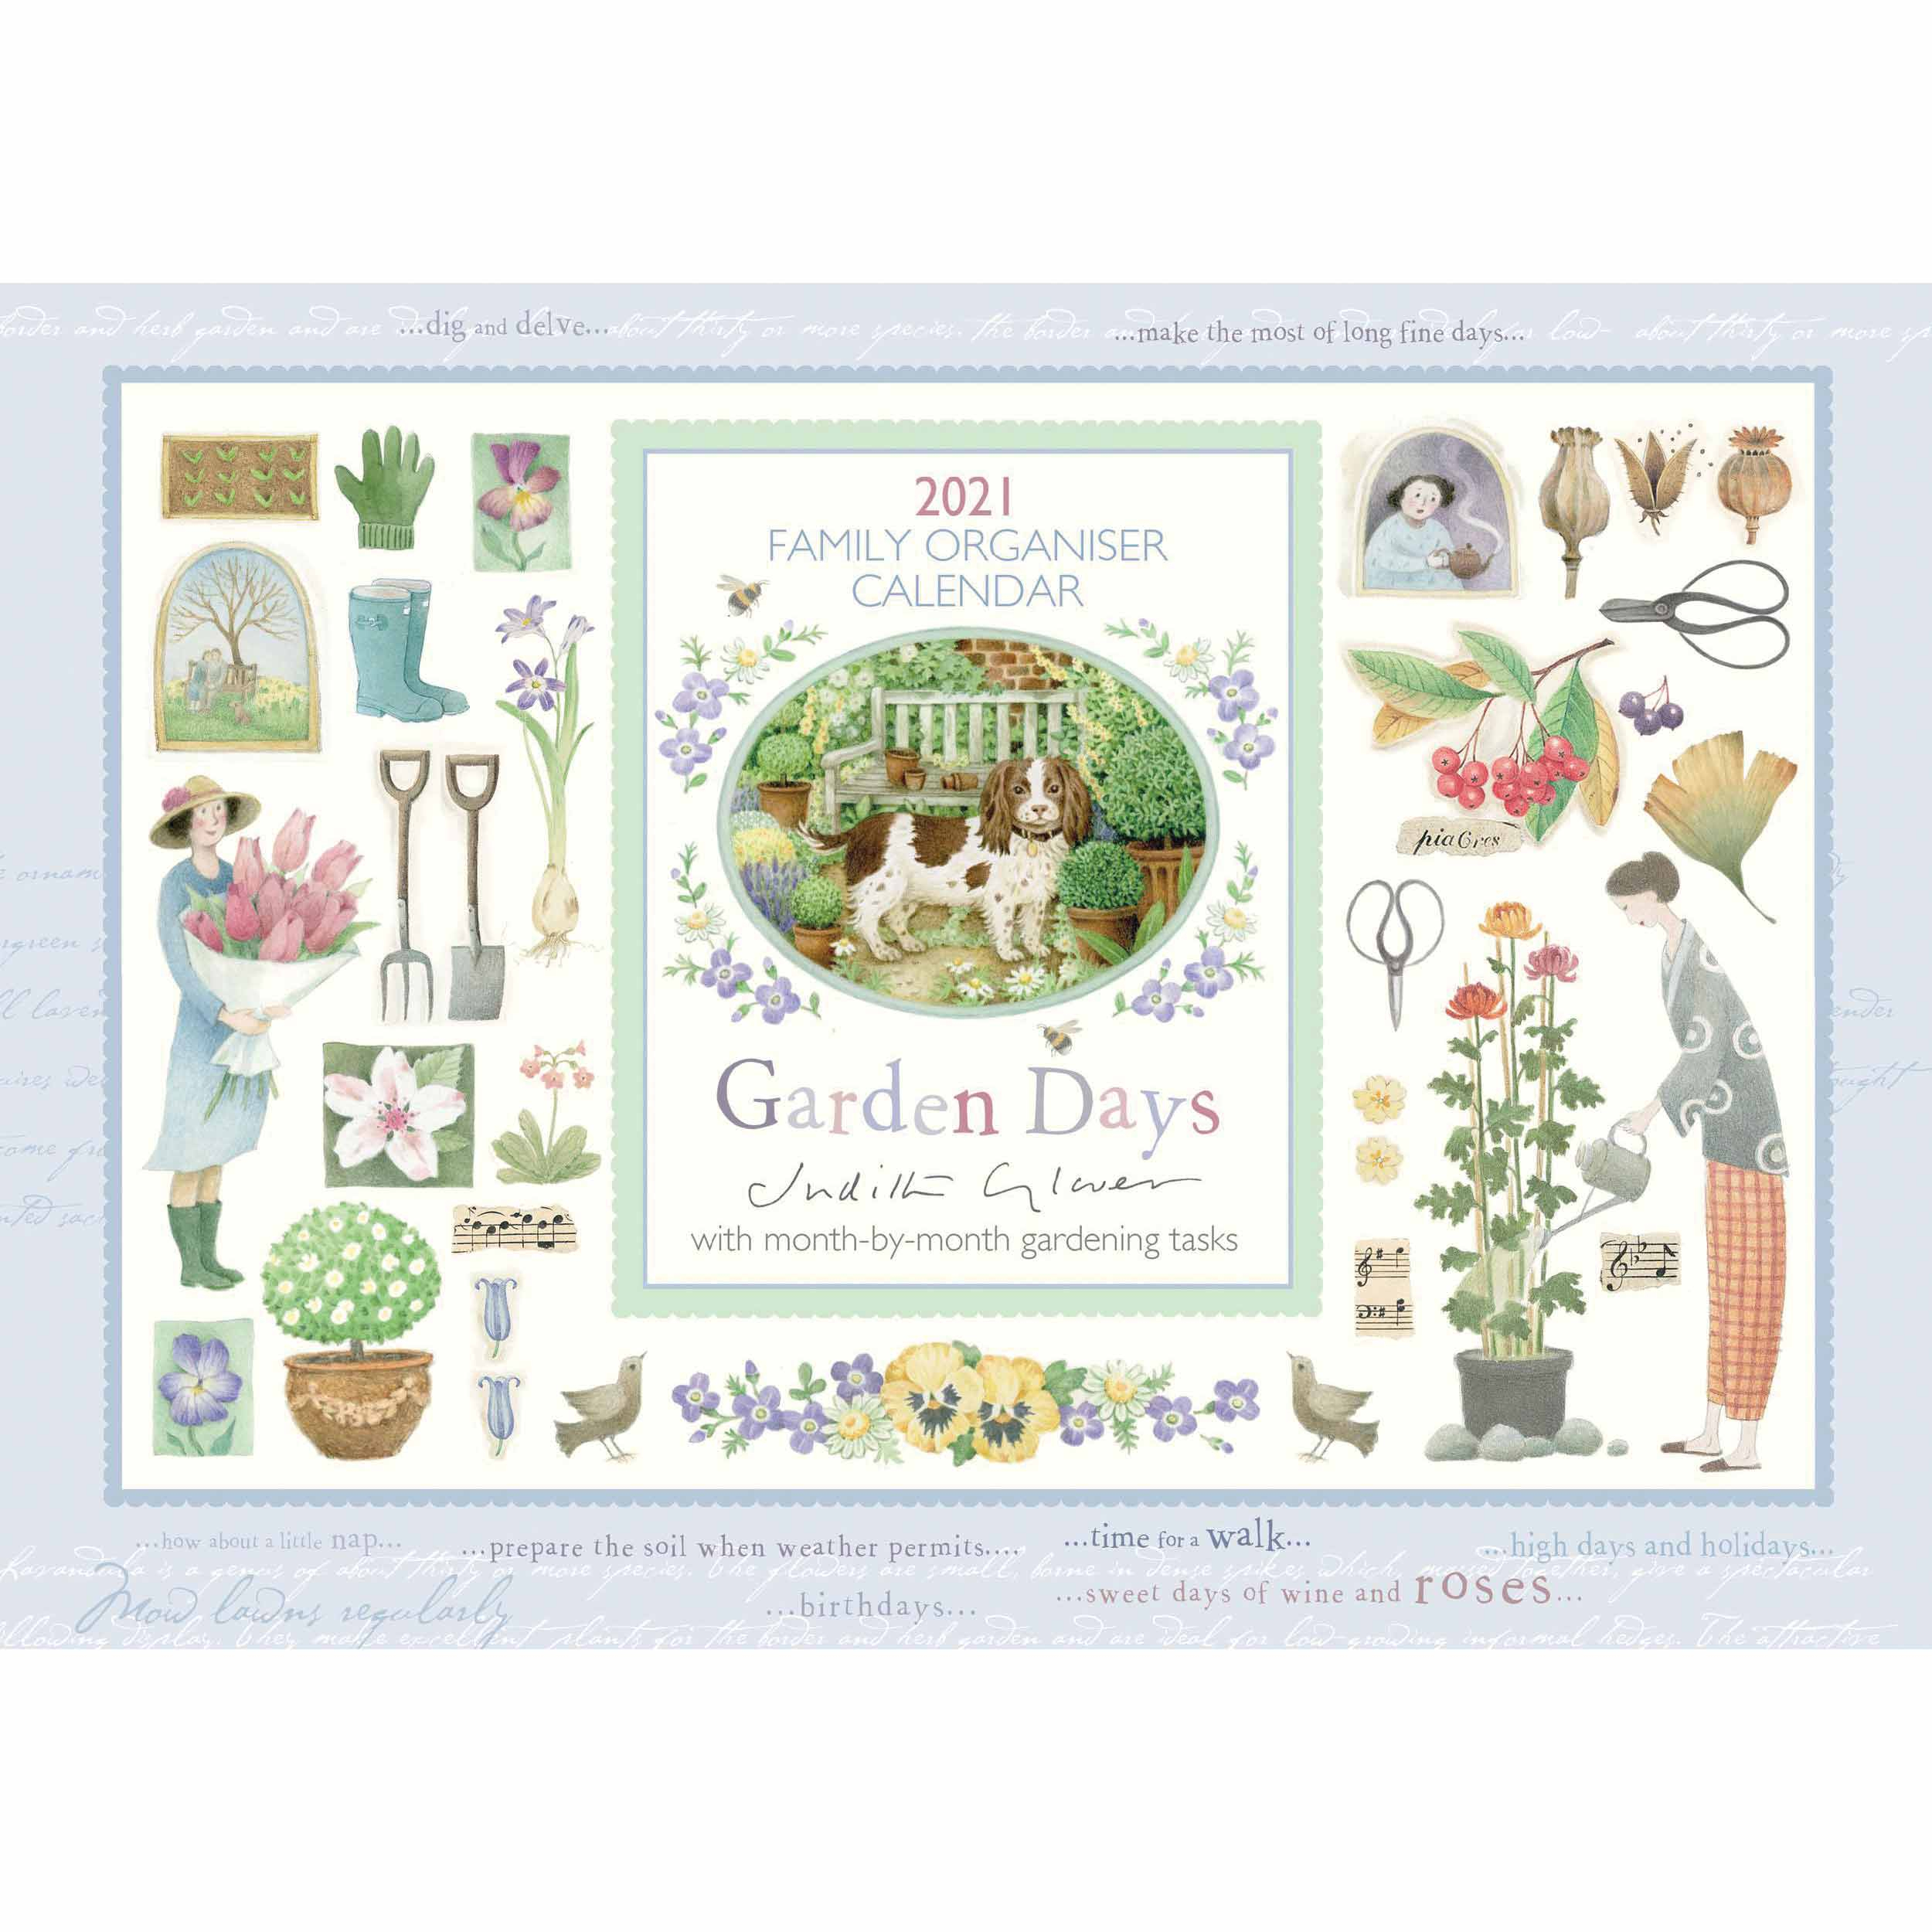 Judith Glover Garden Days A4 Family Planner 2021 At Calendar Club